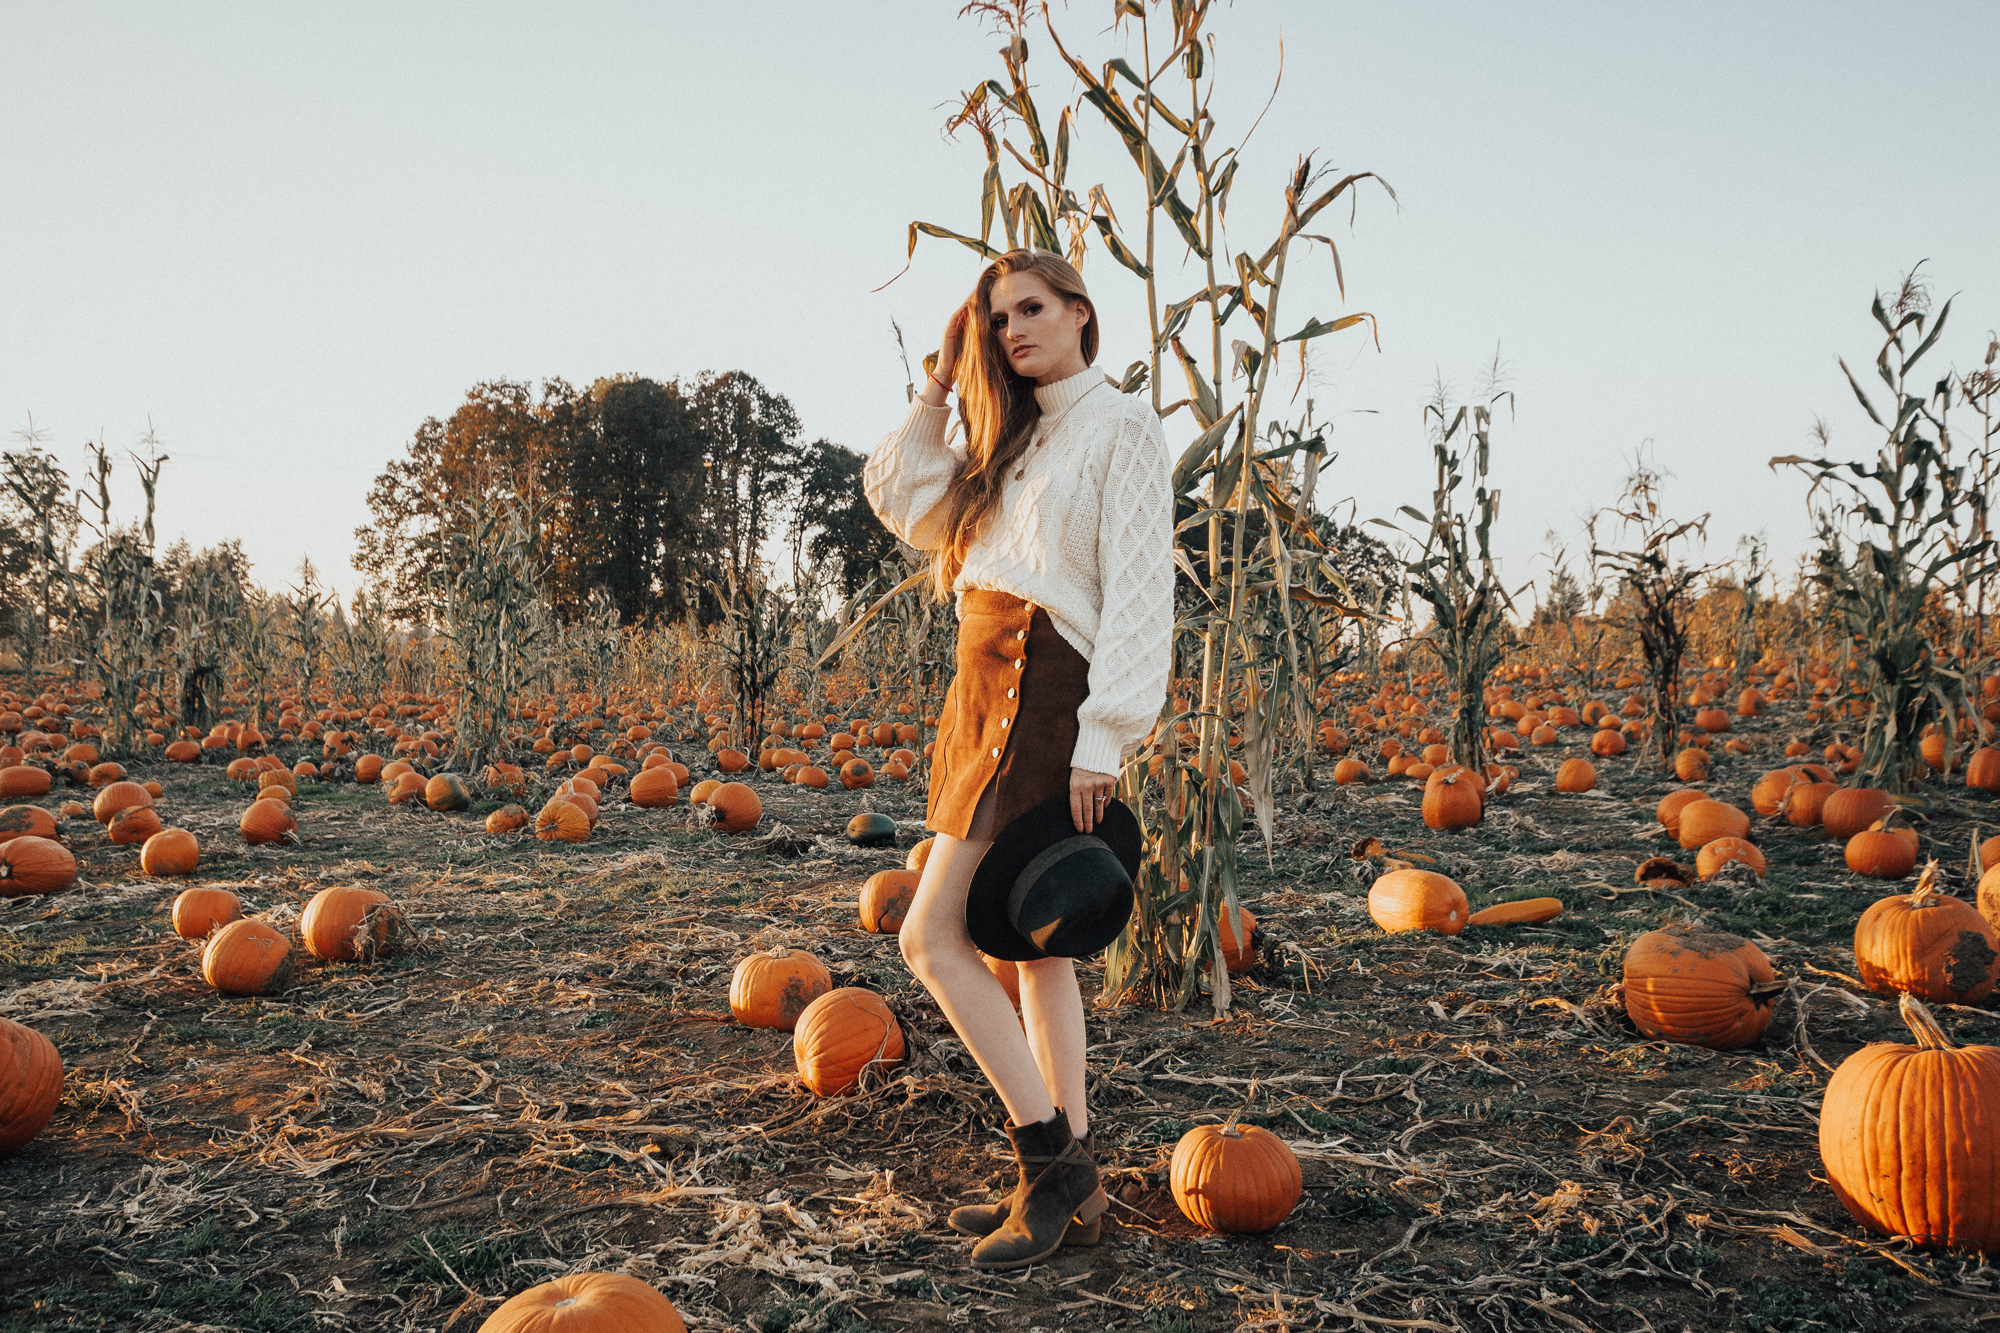 Sweater and Skirt Outfit At The Pumpkin Patch